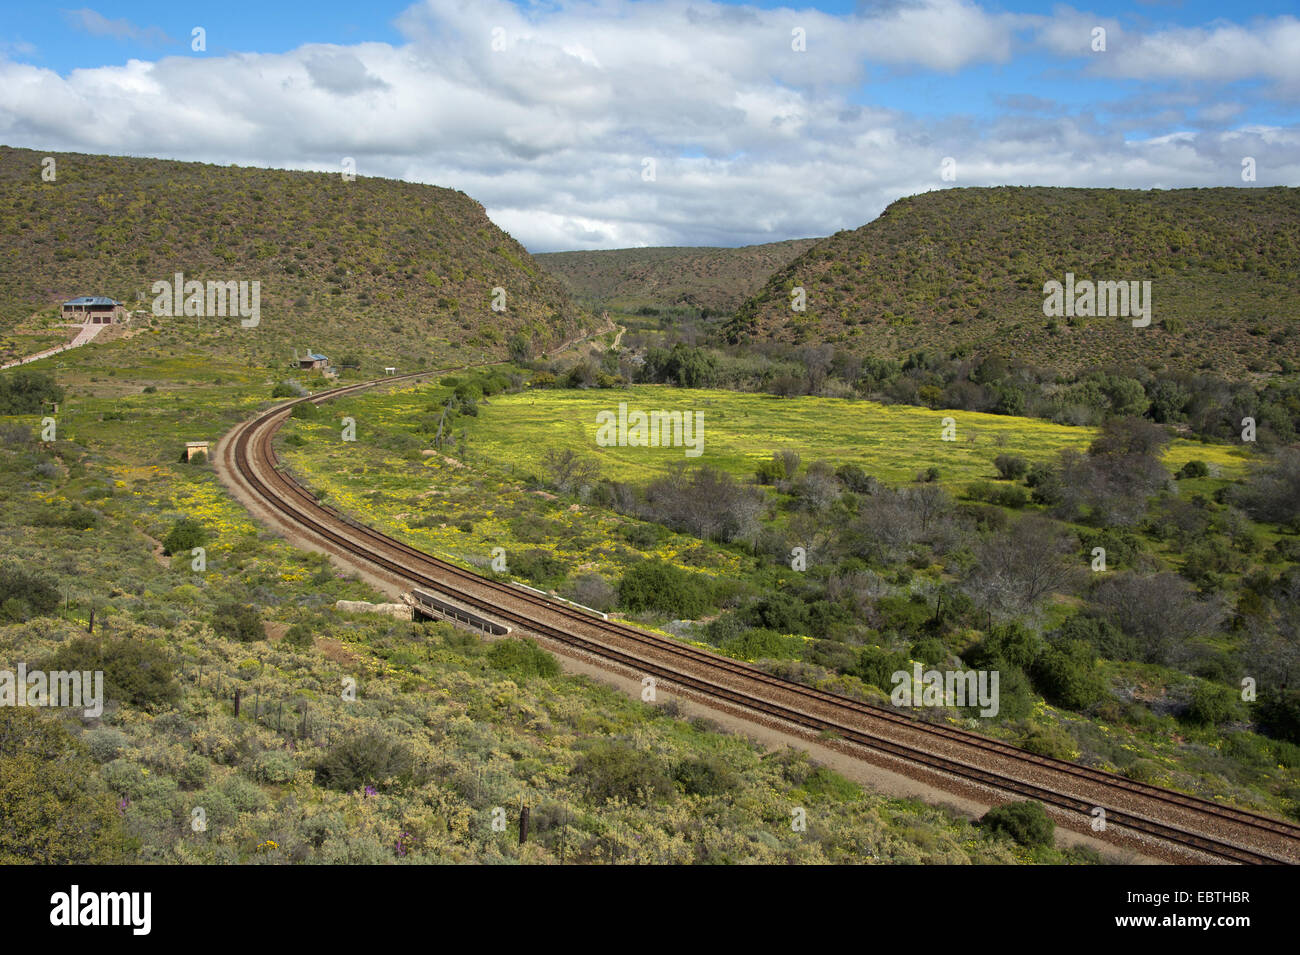 railroad track in hilly landscape, South Africa, Western Cape, Oudtshoorn - Stock Image